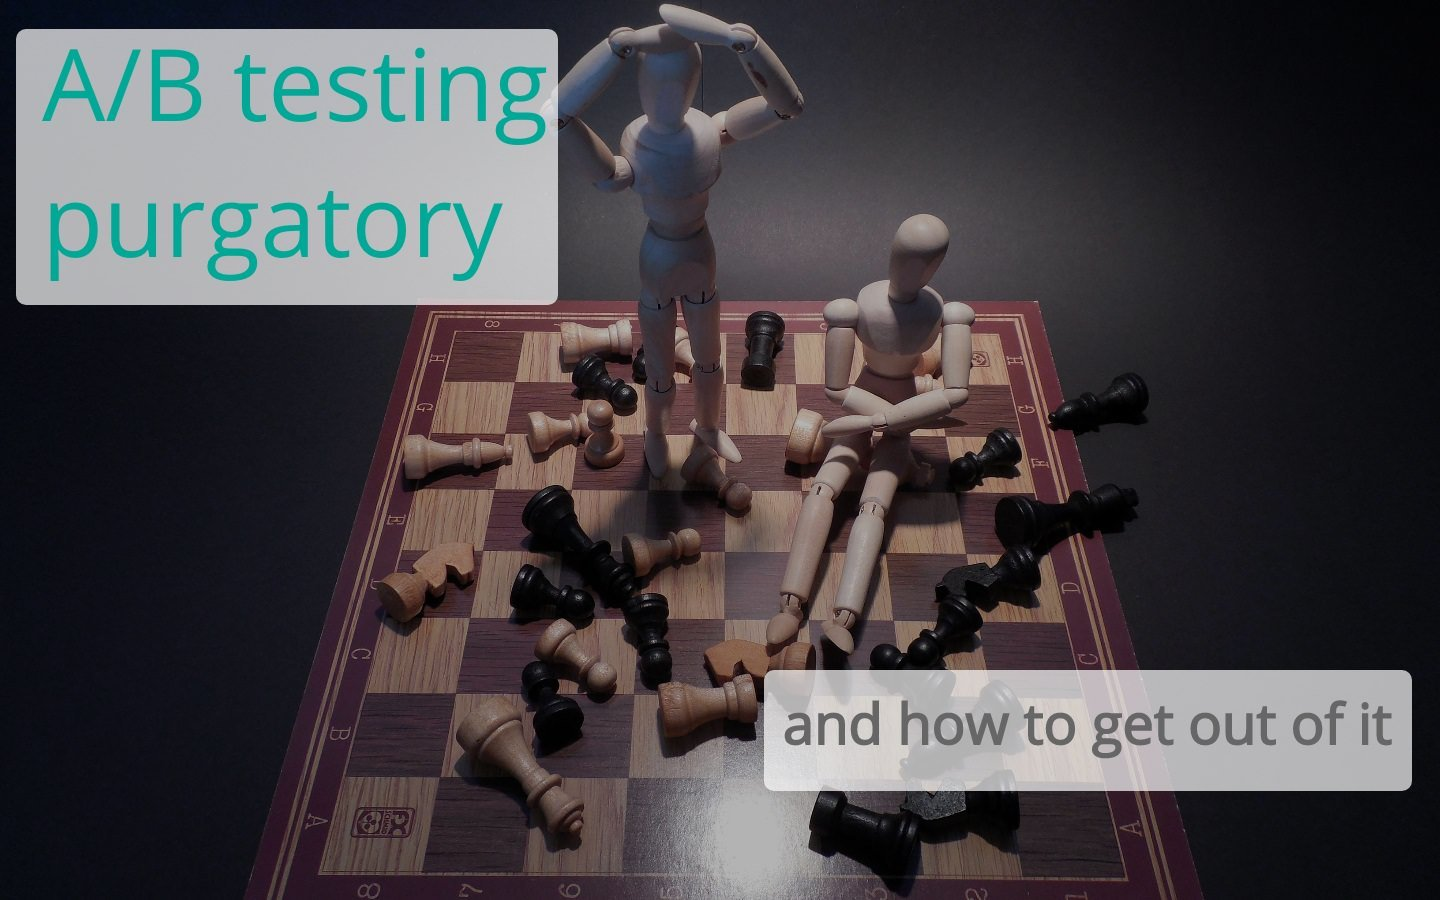 3-A-B-testing-purgatory-and-how-to-get-out-of-it-88395076-1530019405